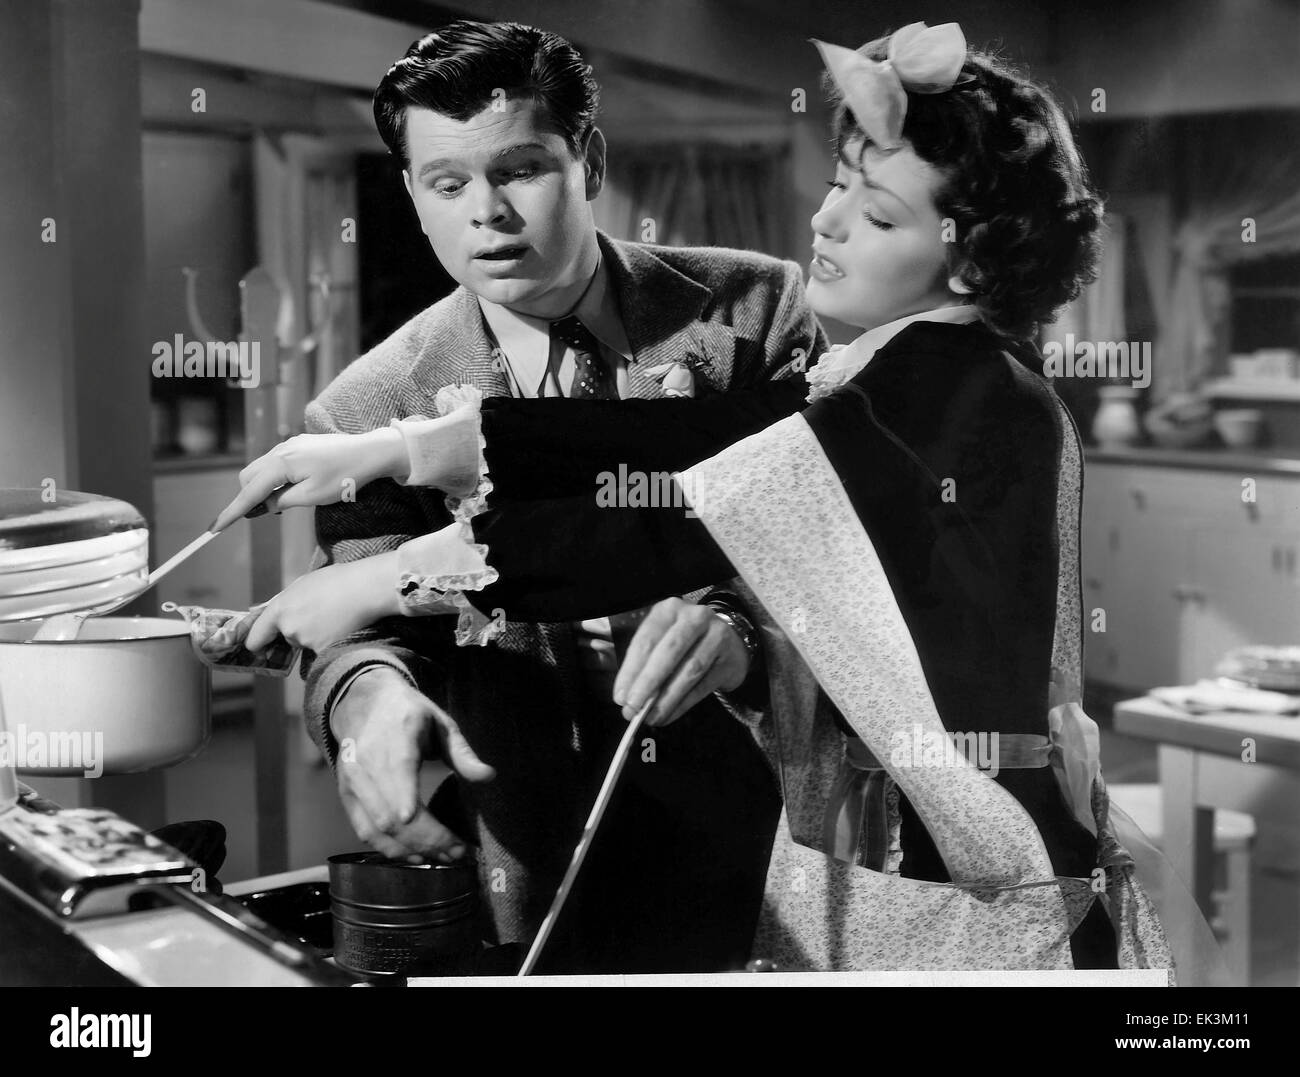 Barry Nelson, Marsha Hunt, on-set of the Film 'The Affairs of Martha', 1942 - Stock Image